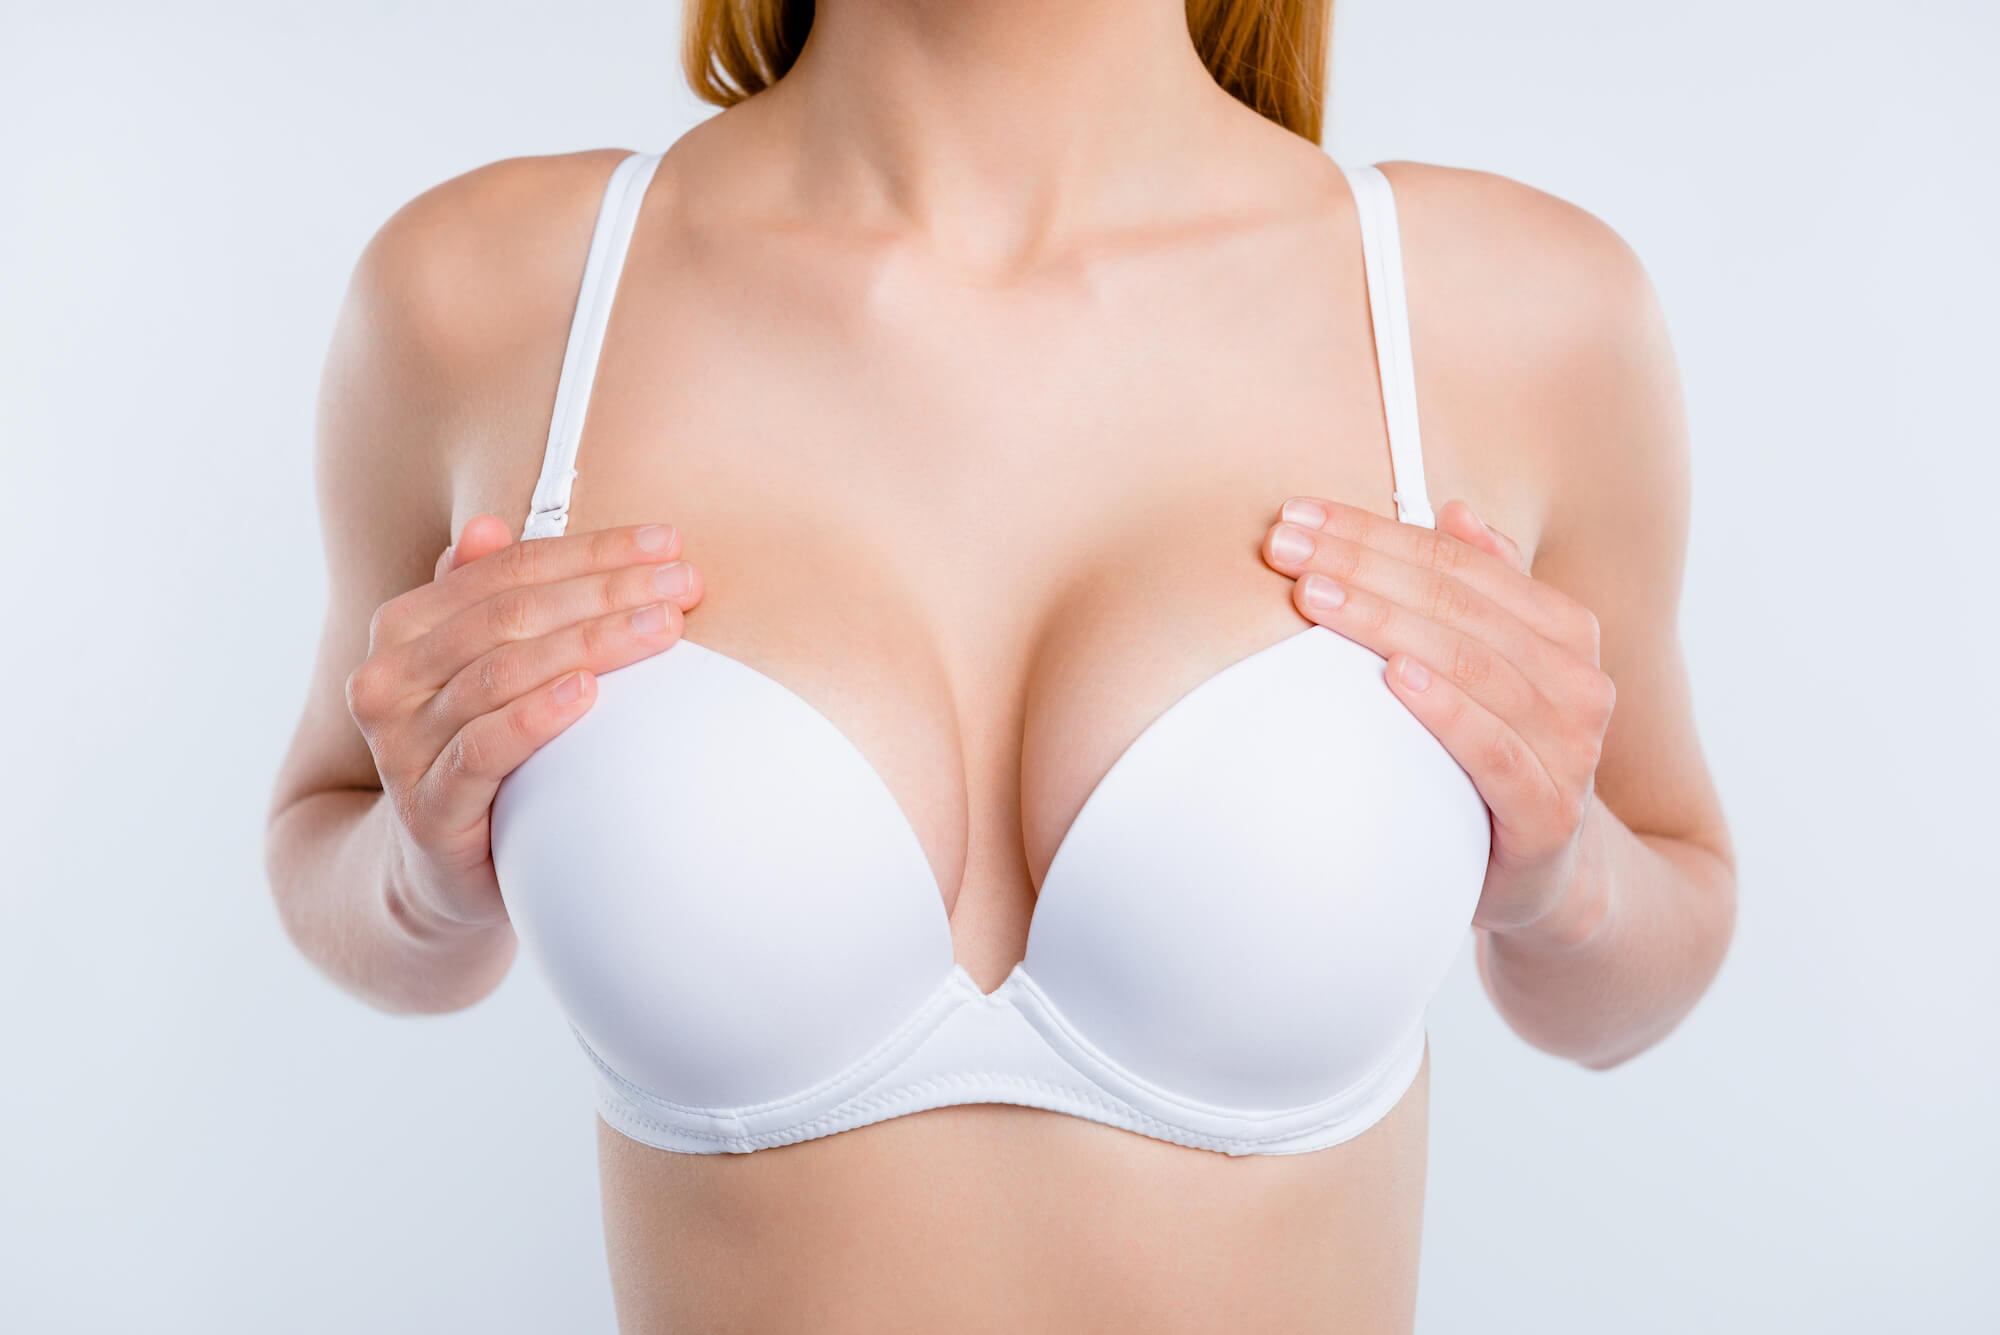 breast reduction before and after photo gallery featured image